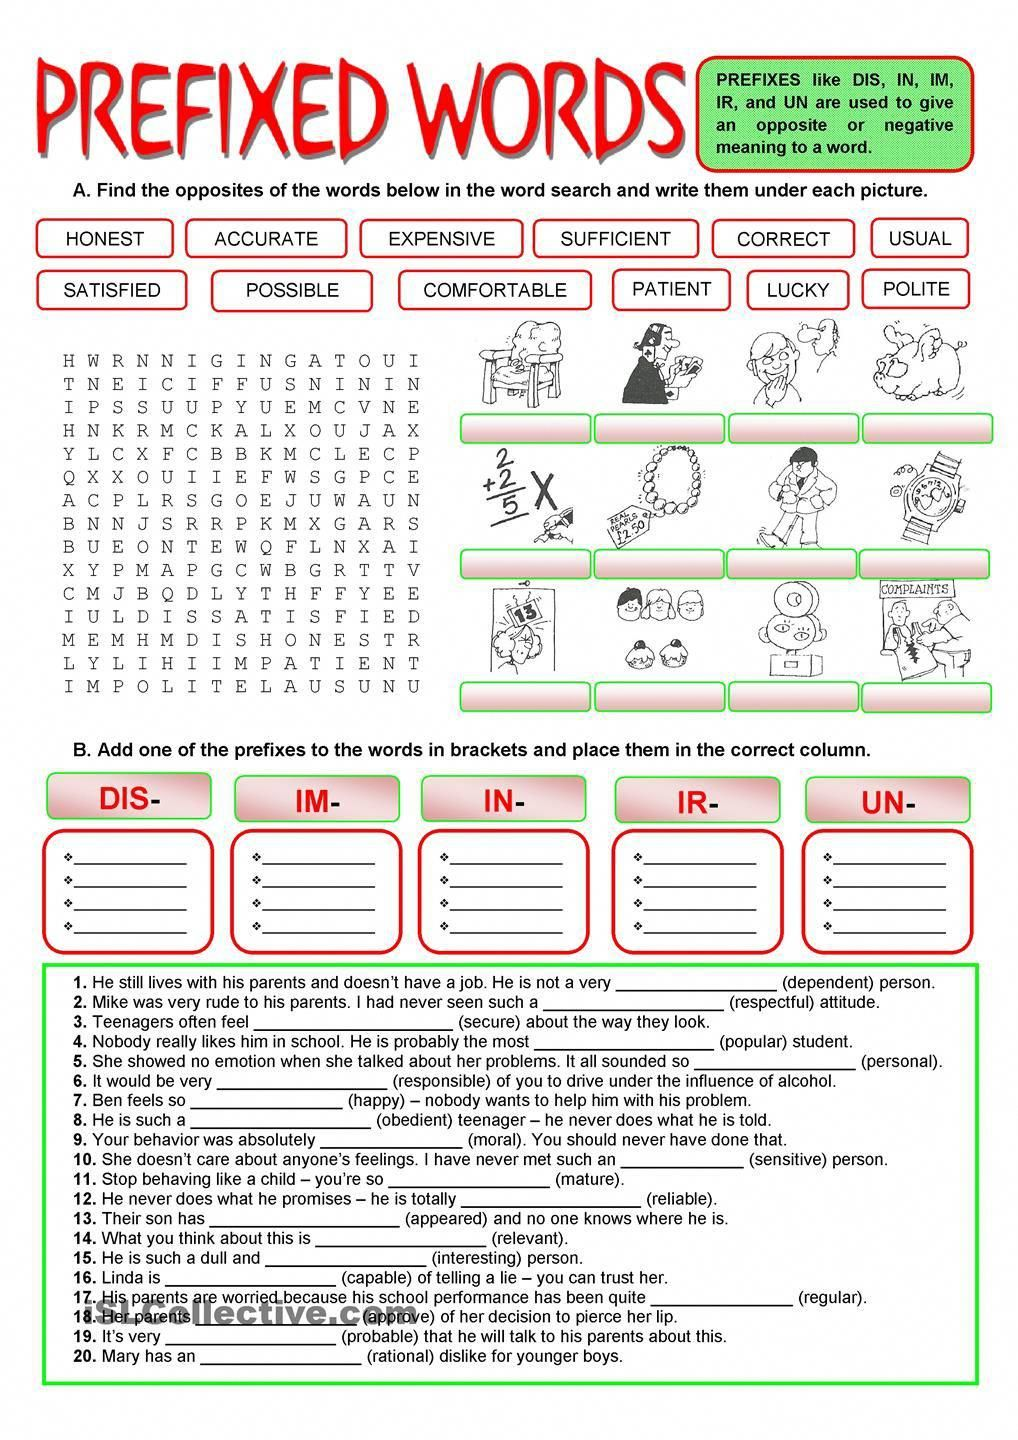 Prefixes Negative Meaning Apprendreanglais Apprendreanglaisenfant Anglaisfacile Coursanglais Parleranglais App Prefixes Word Formation Prefixes And Suffixes [ 1440 x 1018 Pixel ]